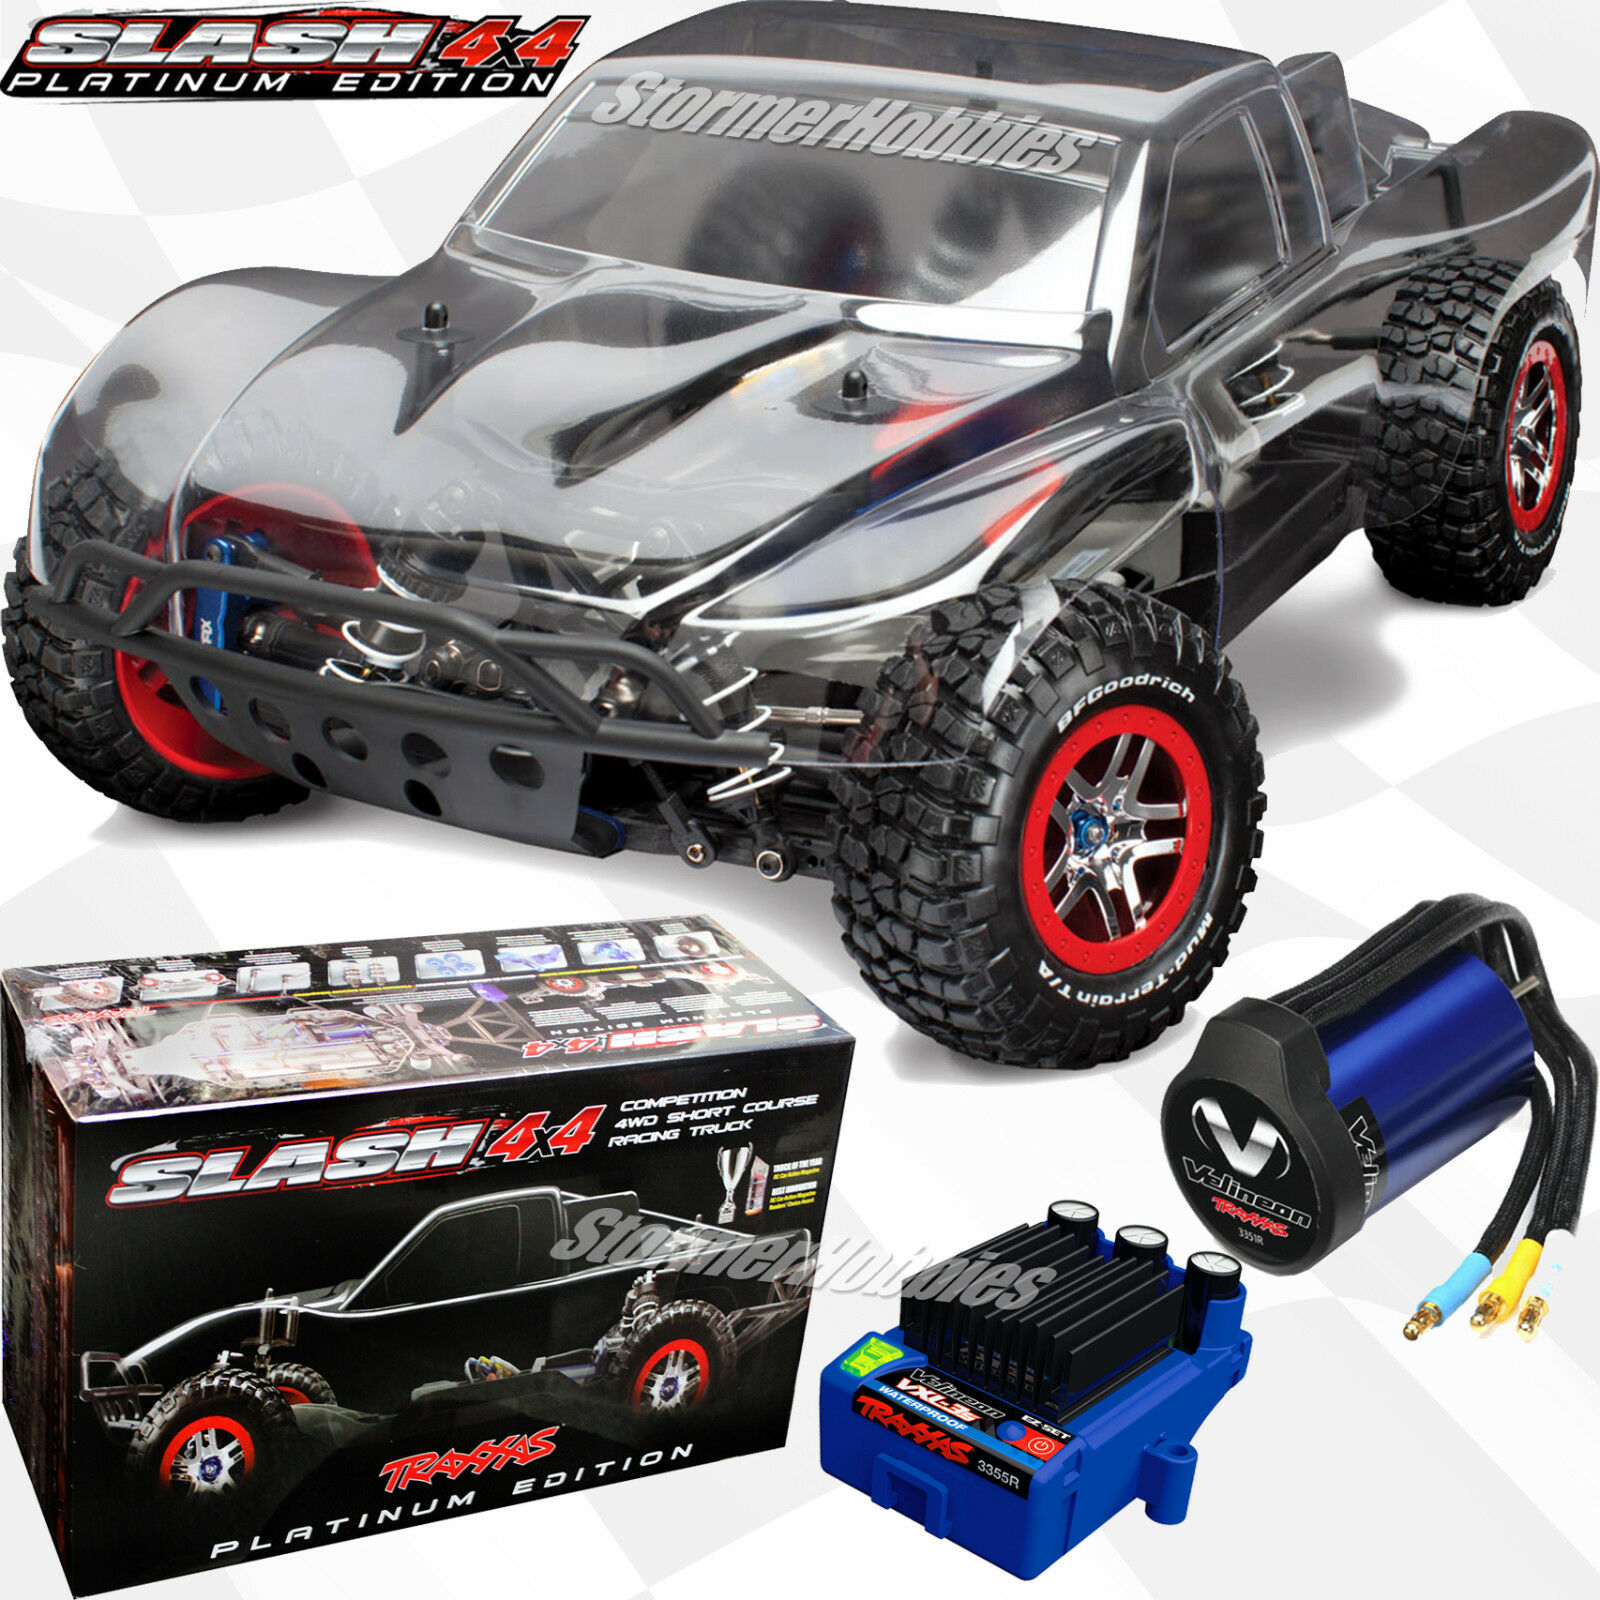 Traxxas Slash 4x4 Platinum Brushless ARR Short Course Truck w LCG chassis